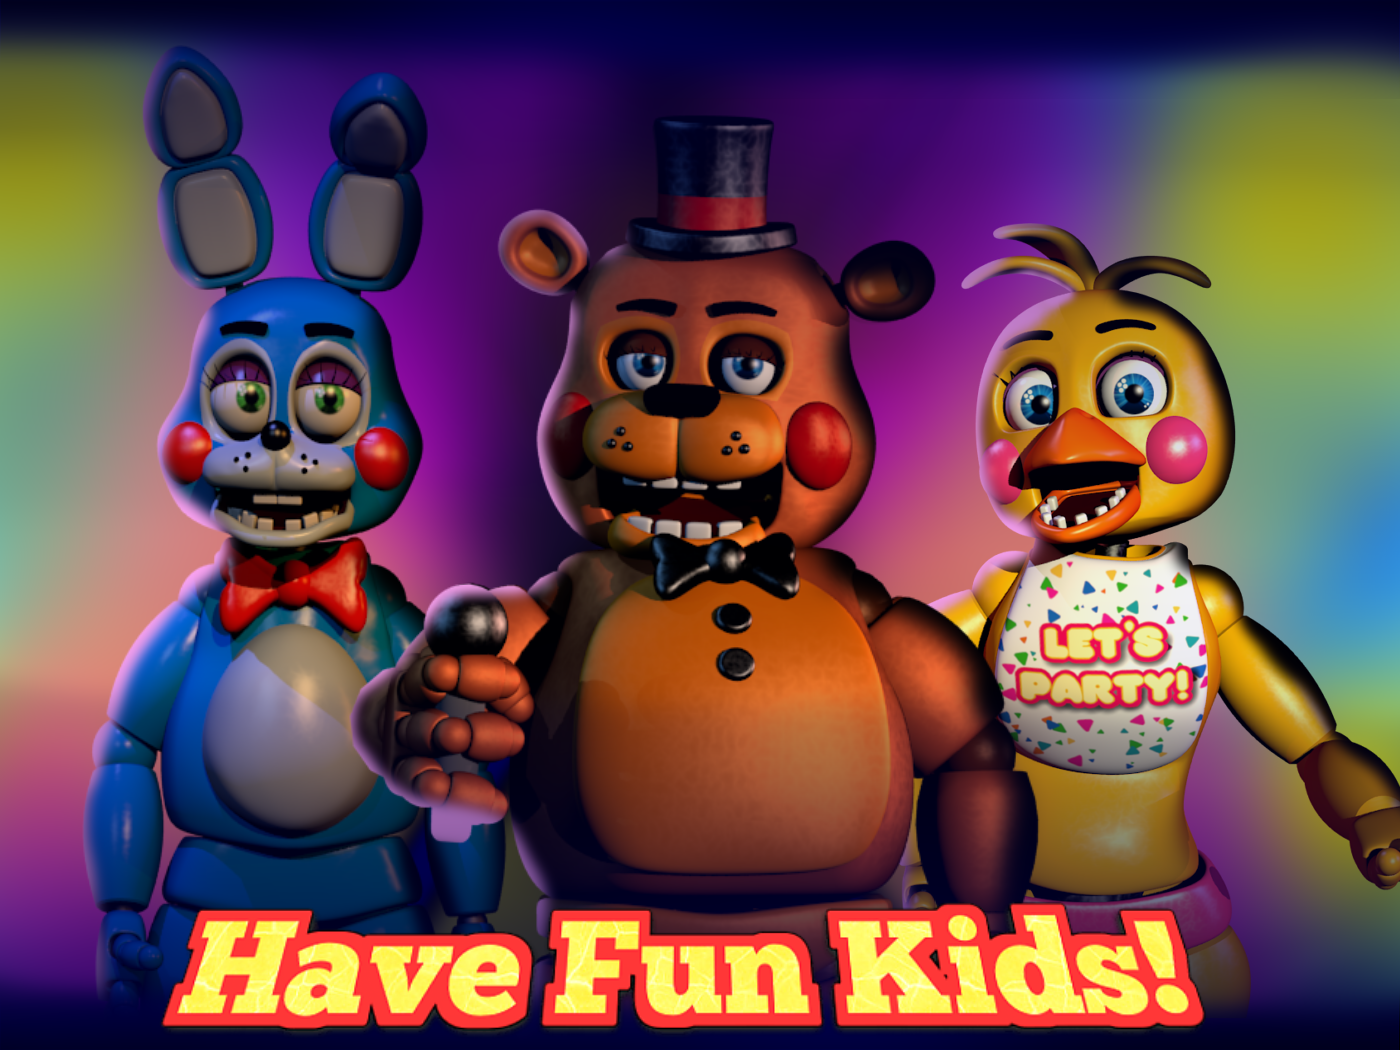 Fnaf Blender Edit New Freddy Fazbear Pizzeria By Spring O Bonnie On Deviantart